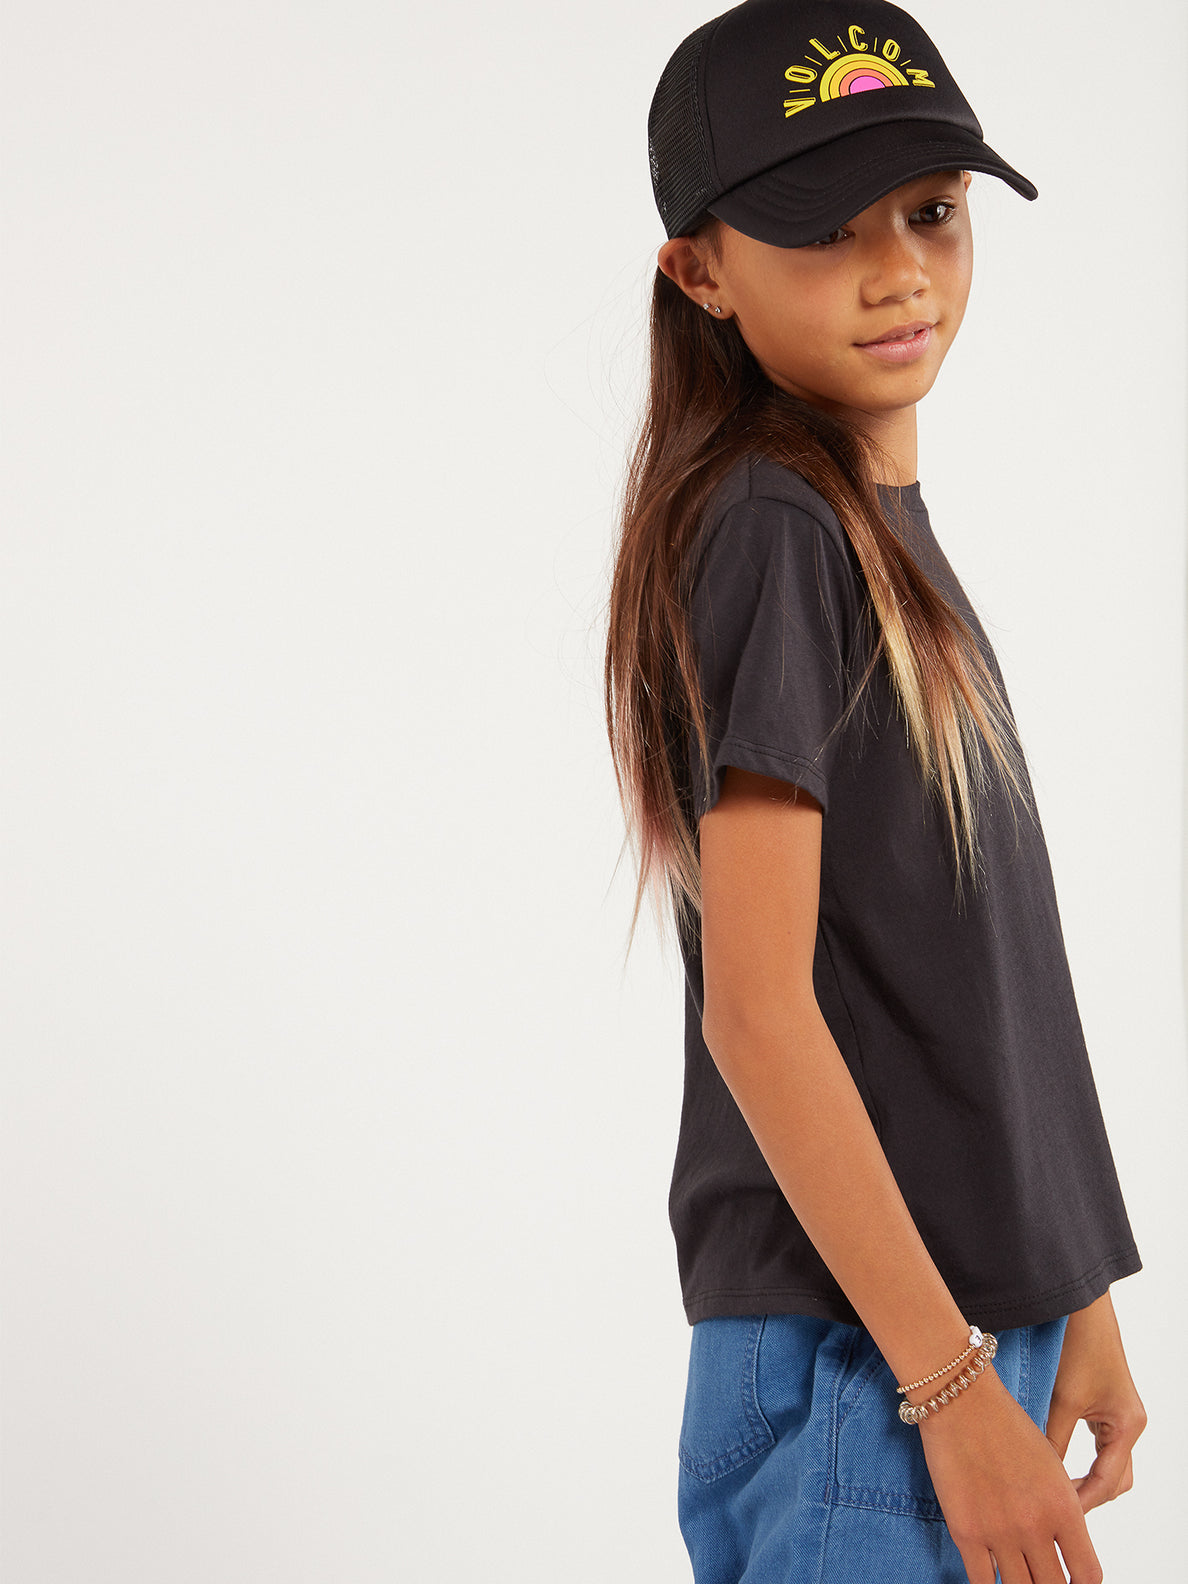 _Big Girls Hey Slims Hat - Black (S5522000_BLK) [1]